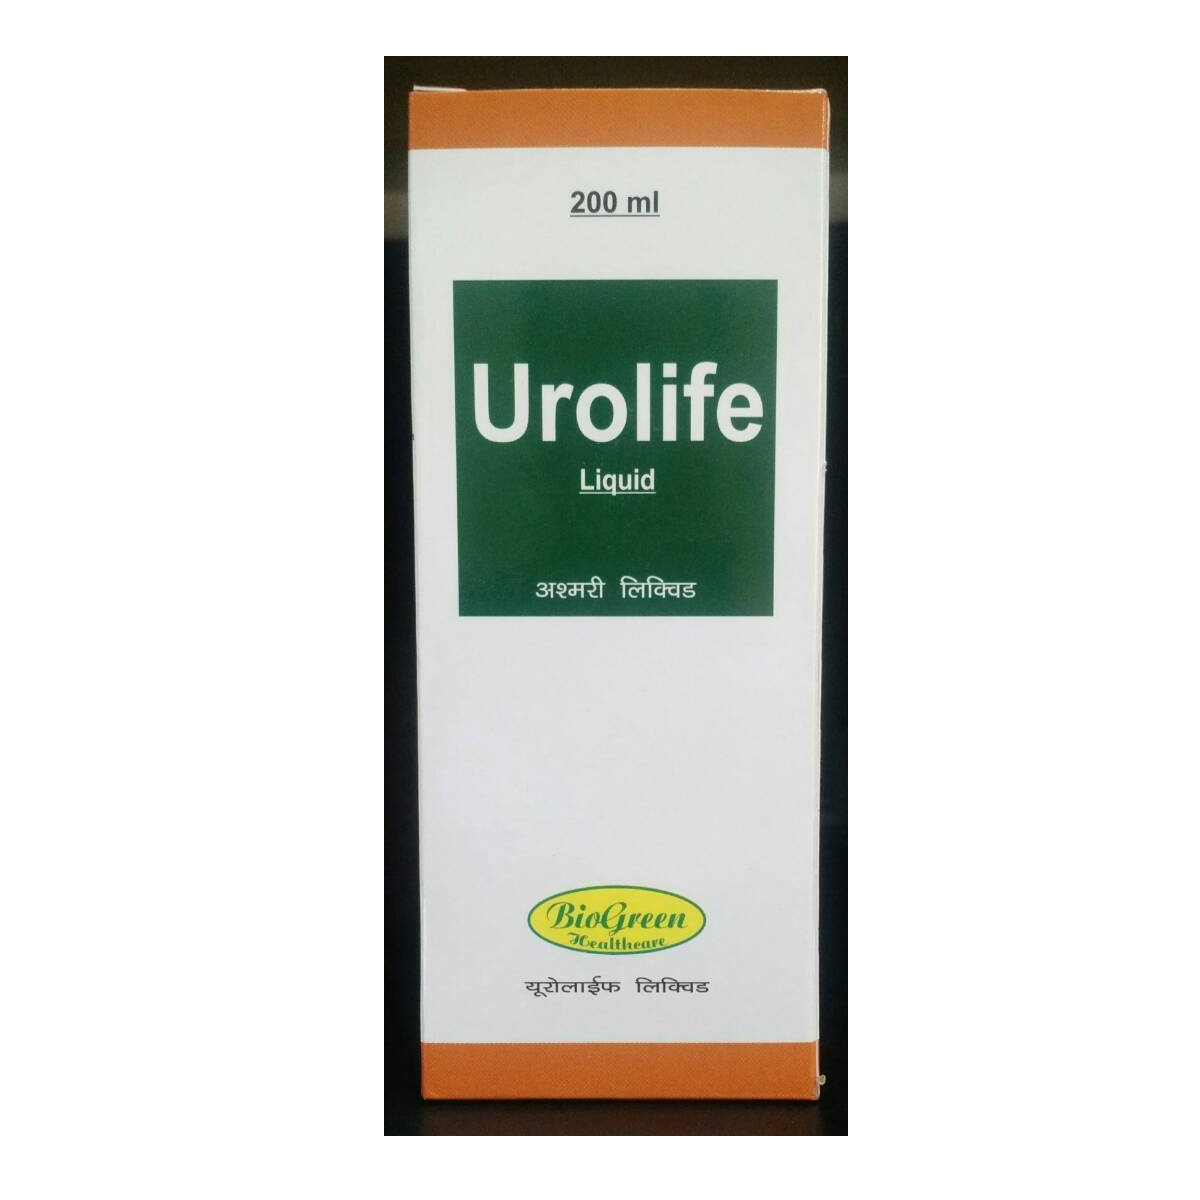 Urolife Liquid In Shajapur